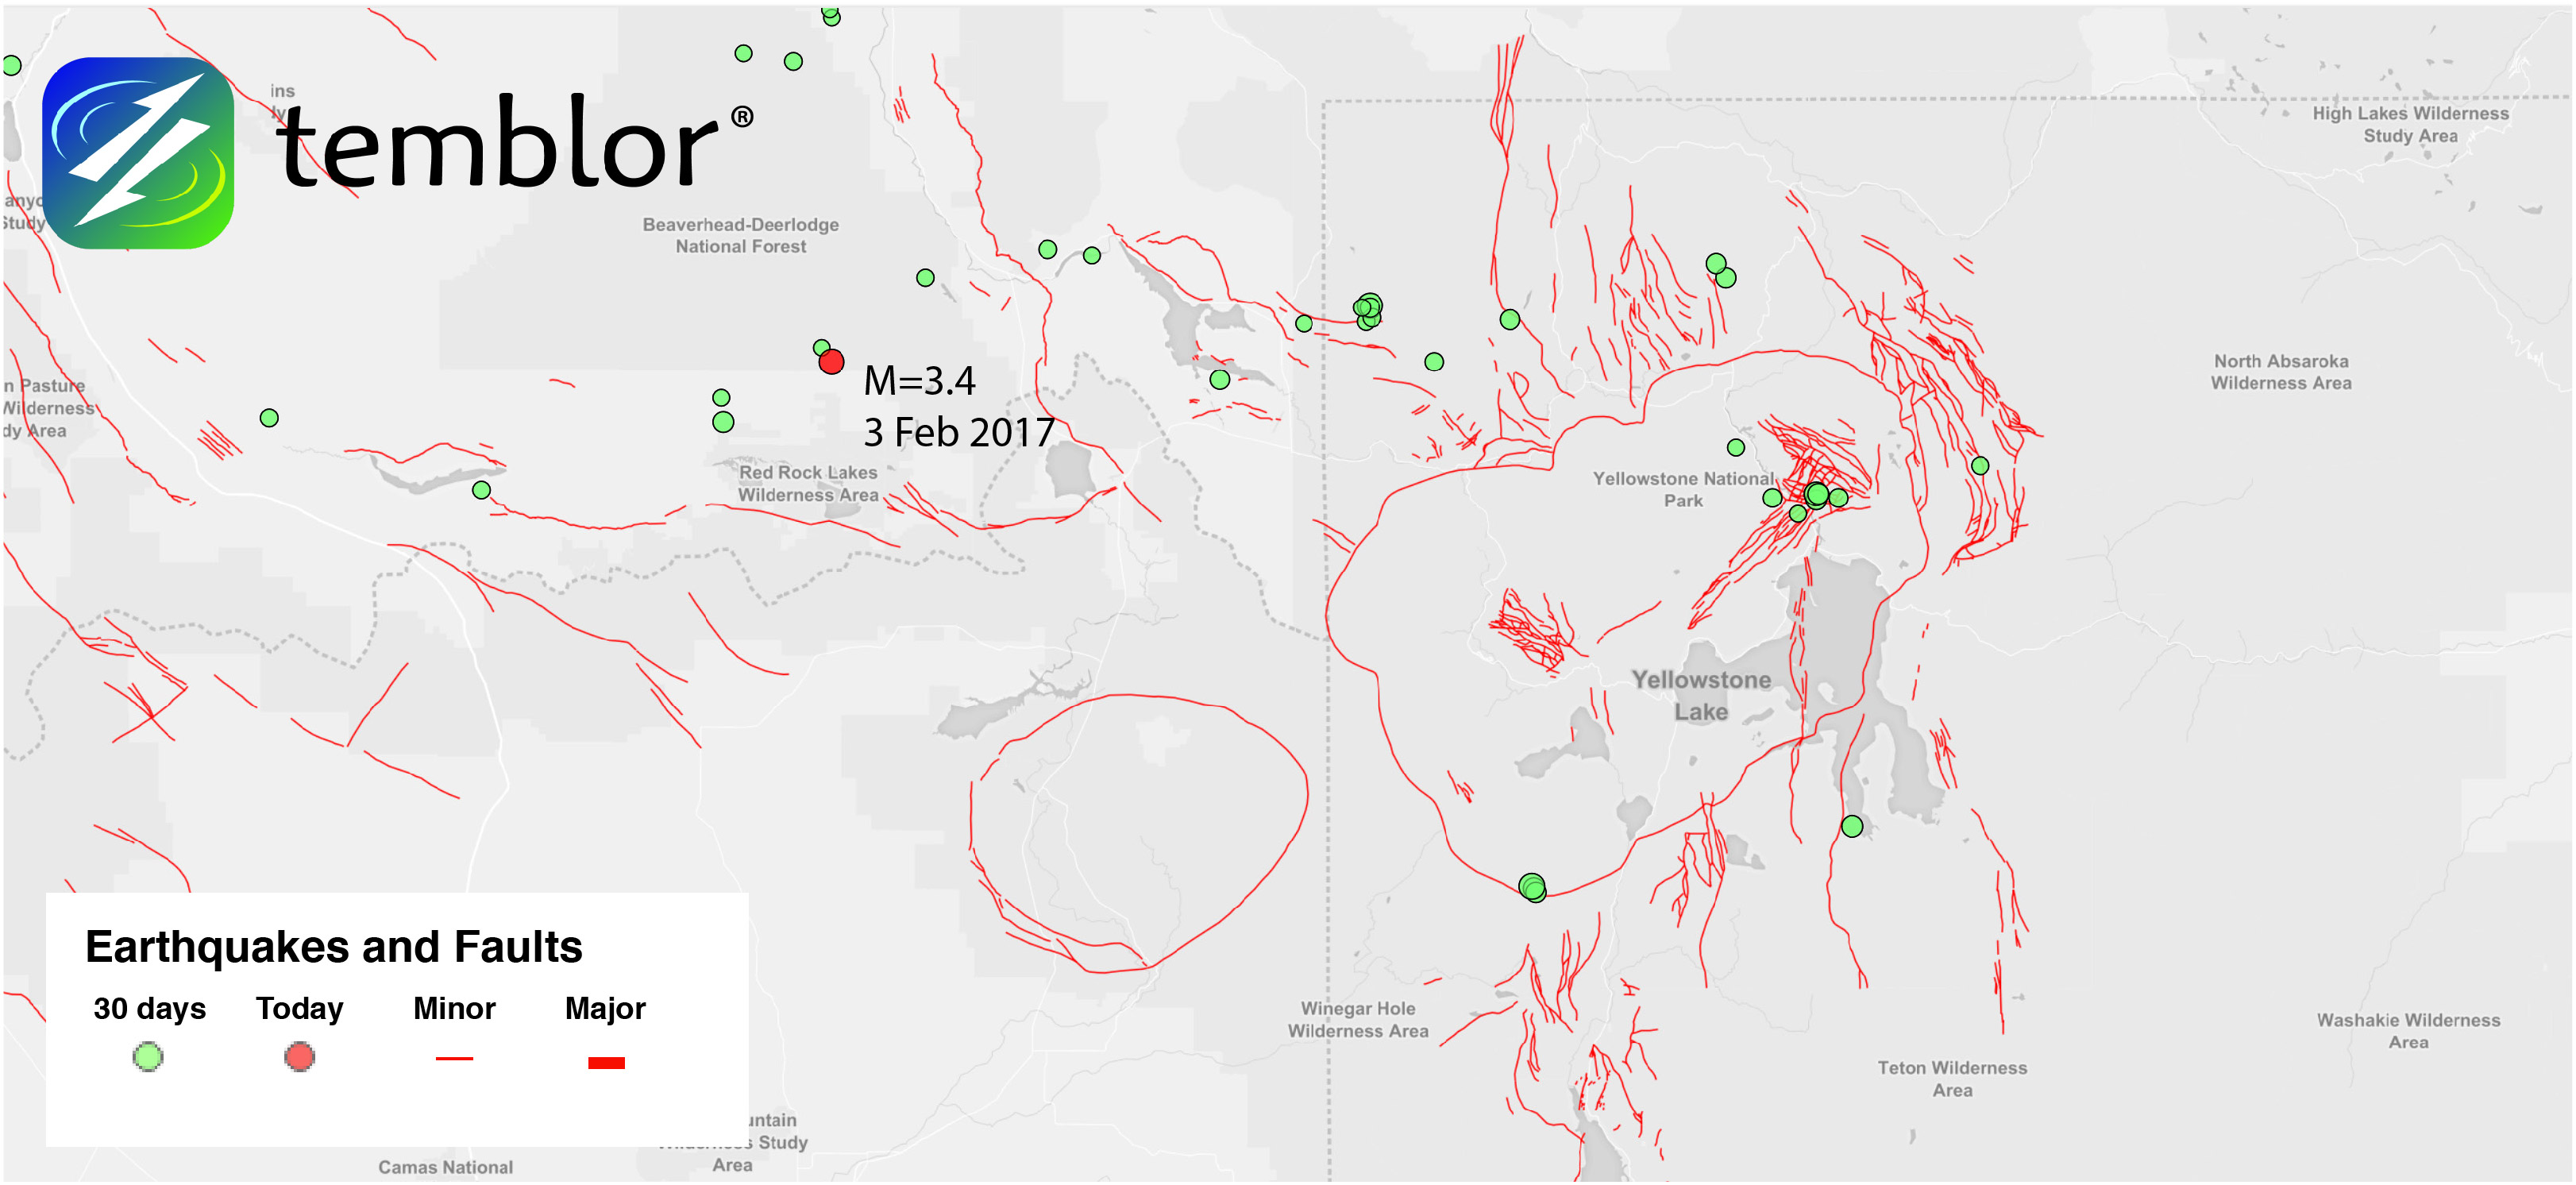 idaho-earthquake-map-yellowstone-national-park-earthquakes